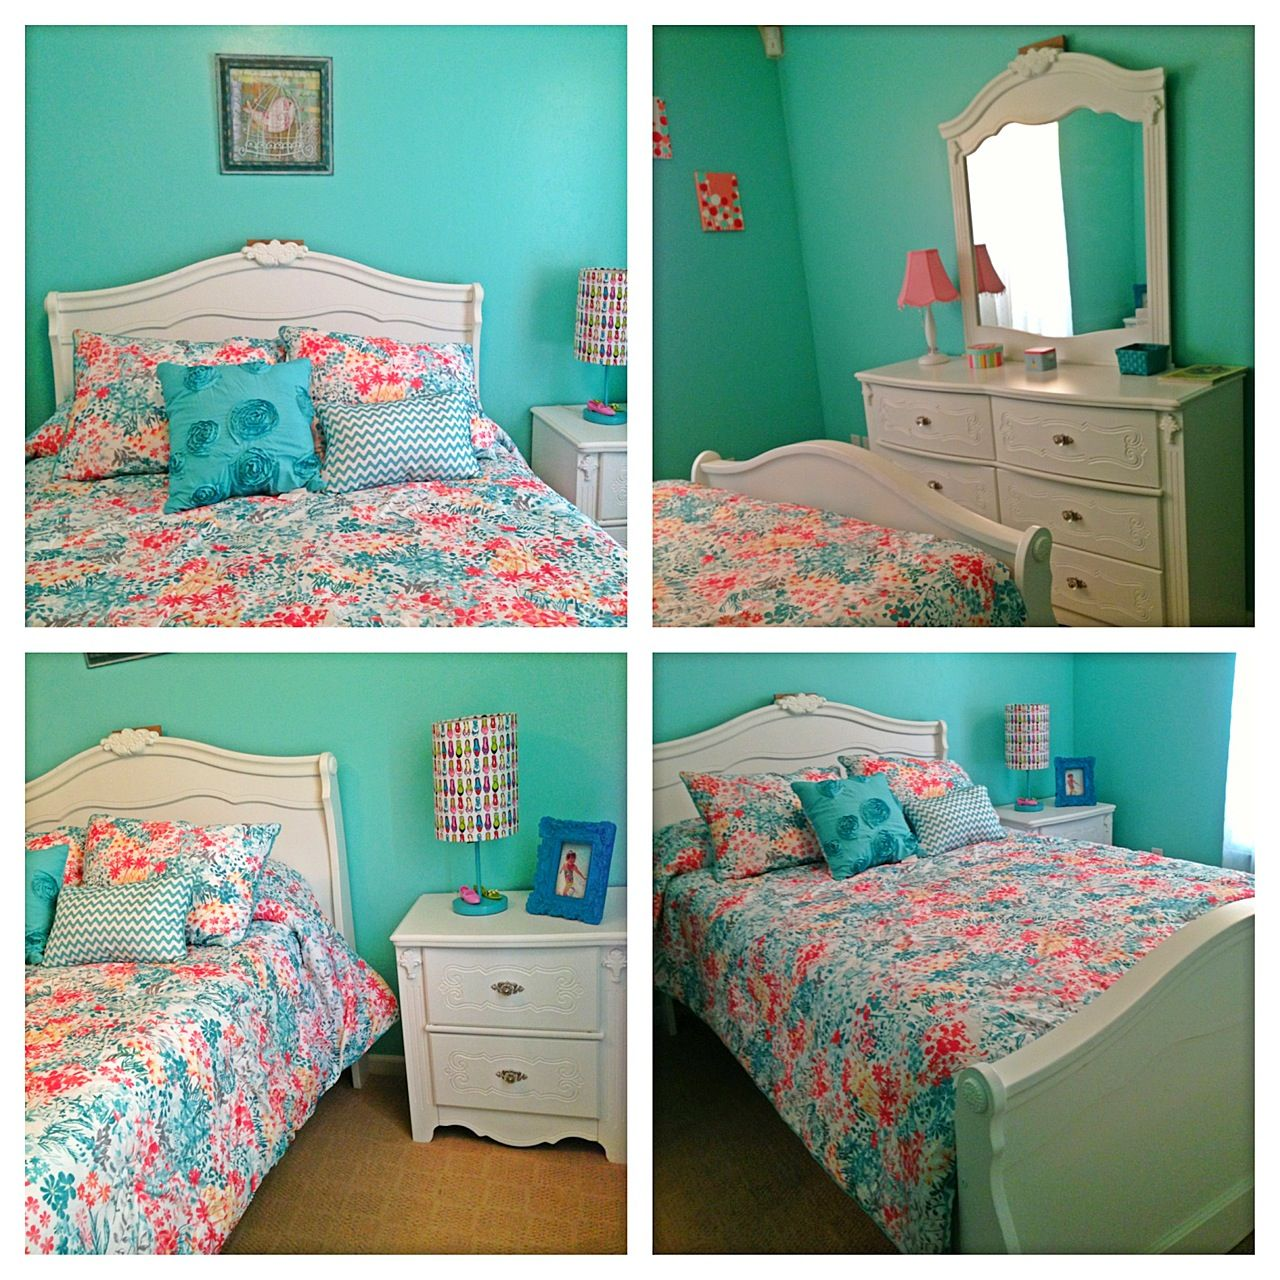 Turquoise And Coral Girl's Bedroom